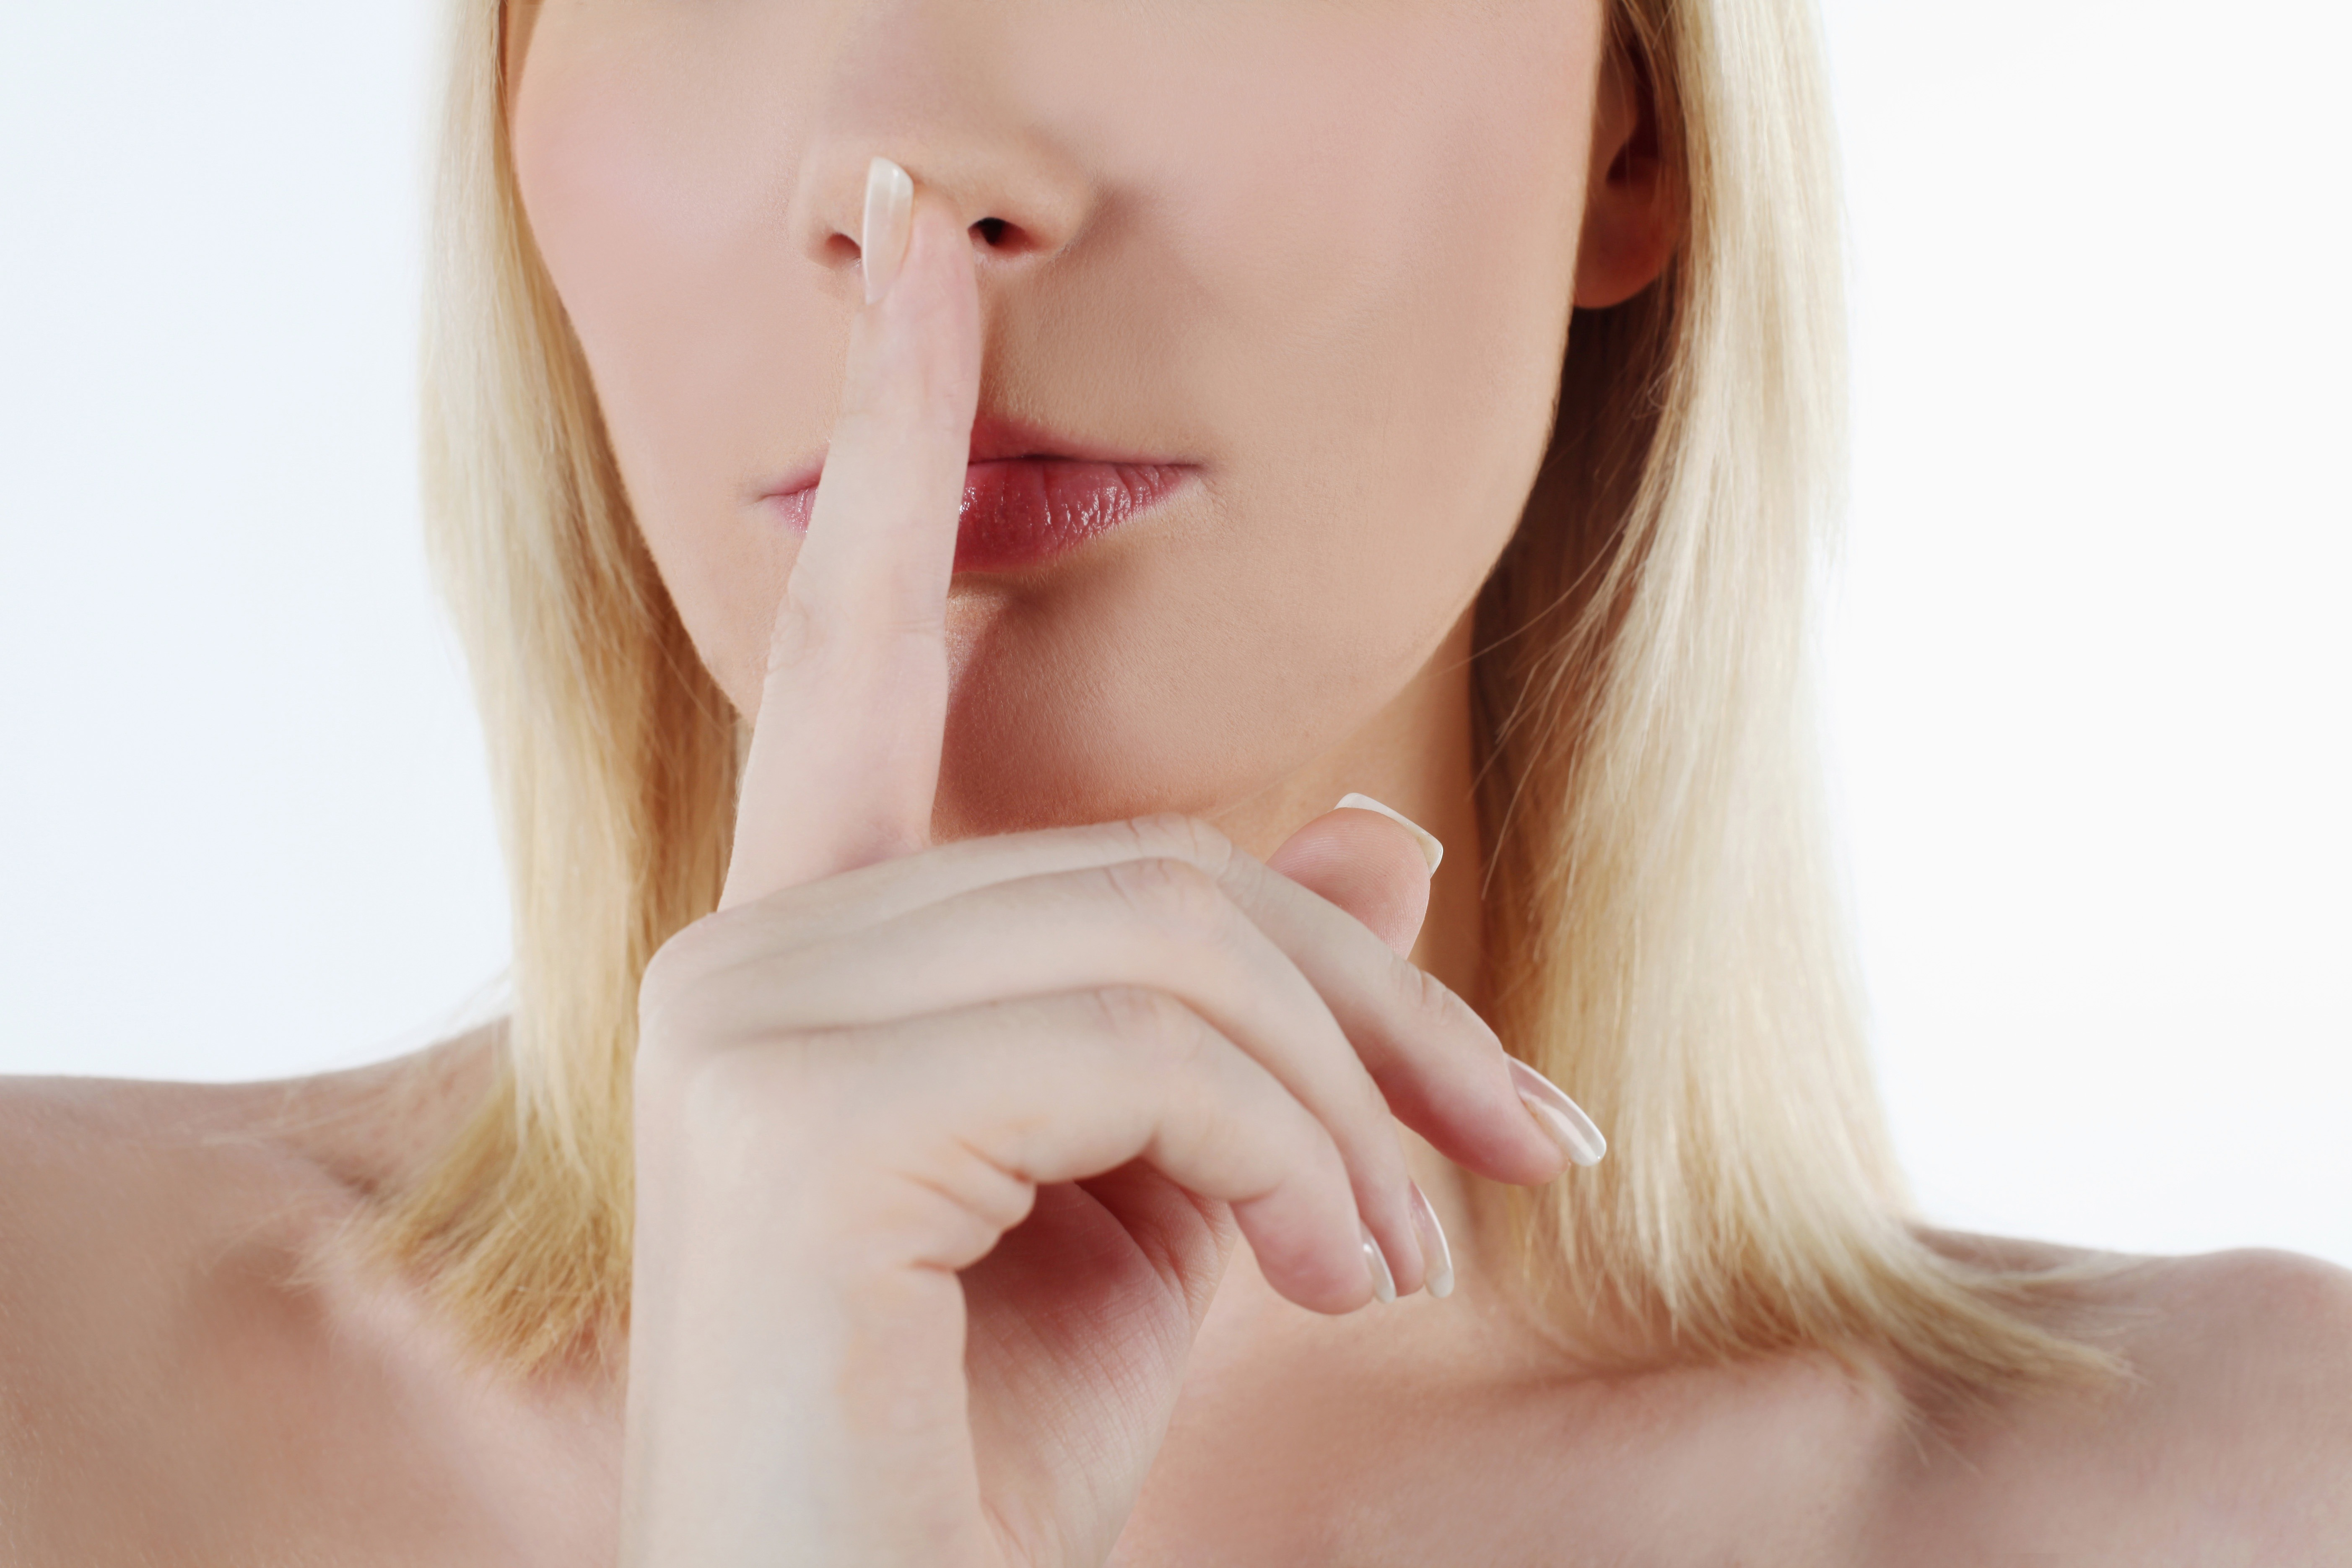 The Divorce Whisperer: Have You Become 'That' Girl?